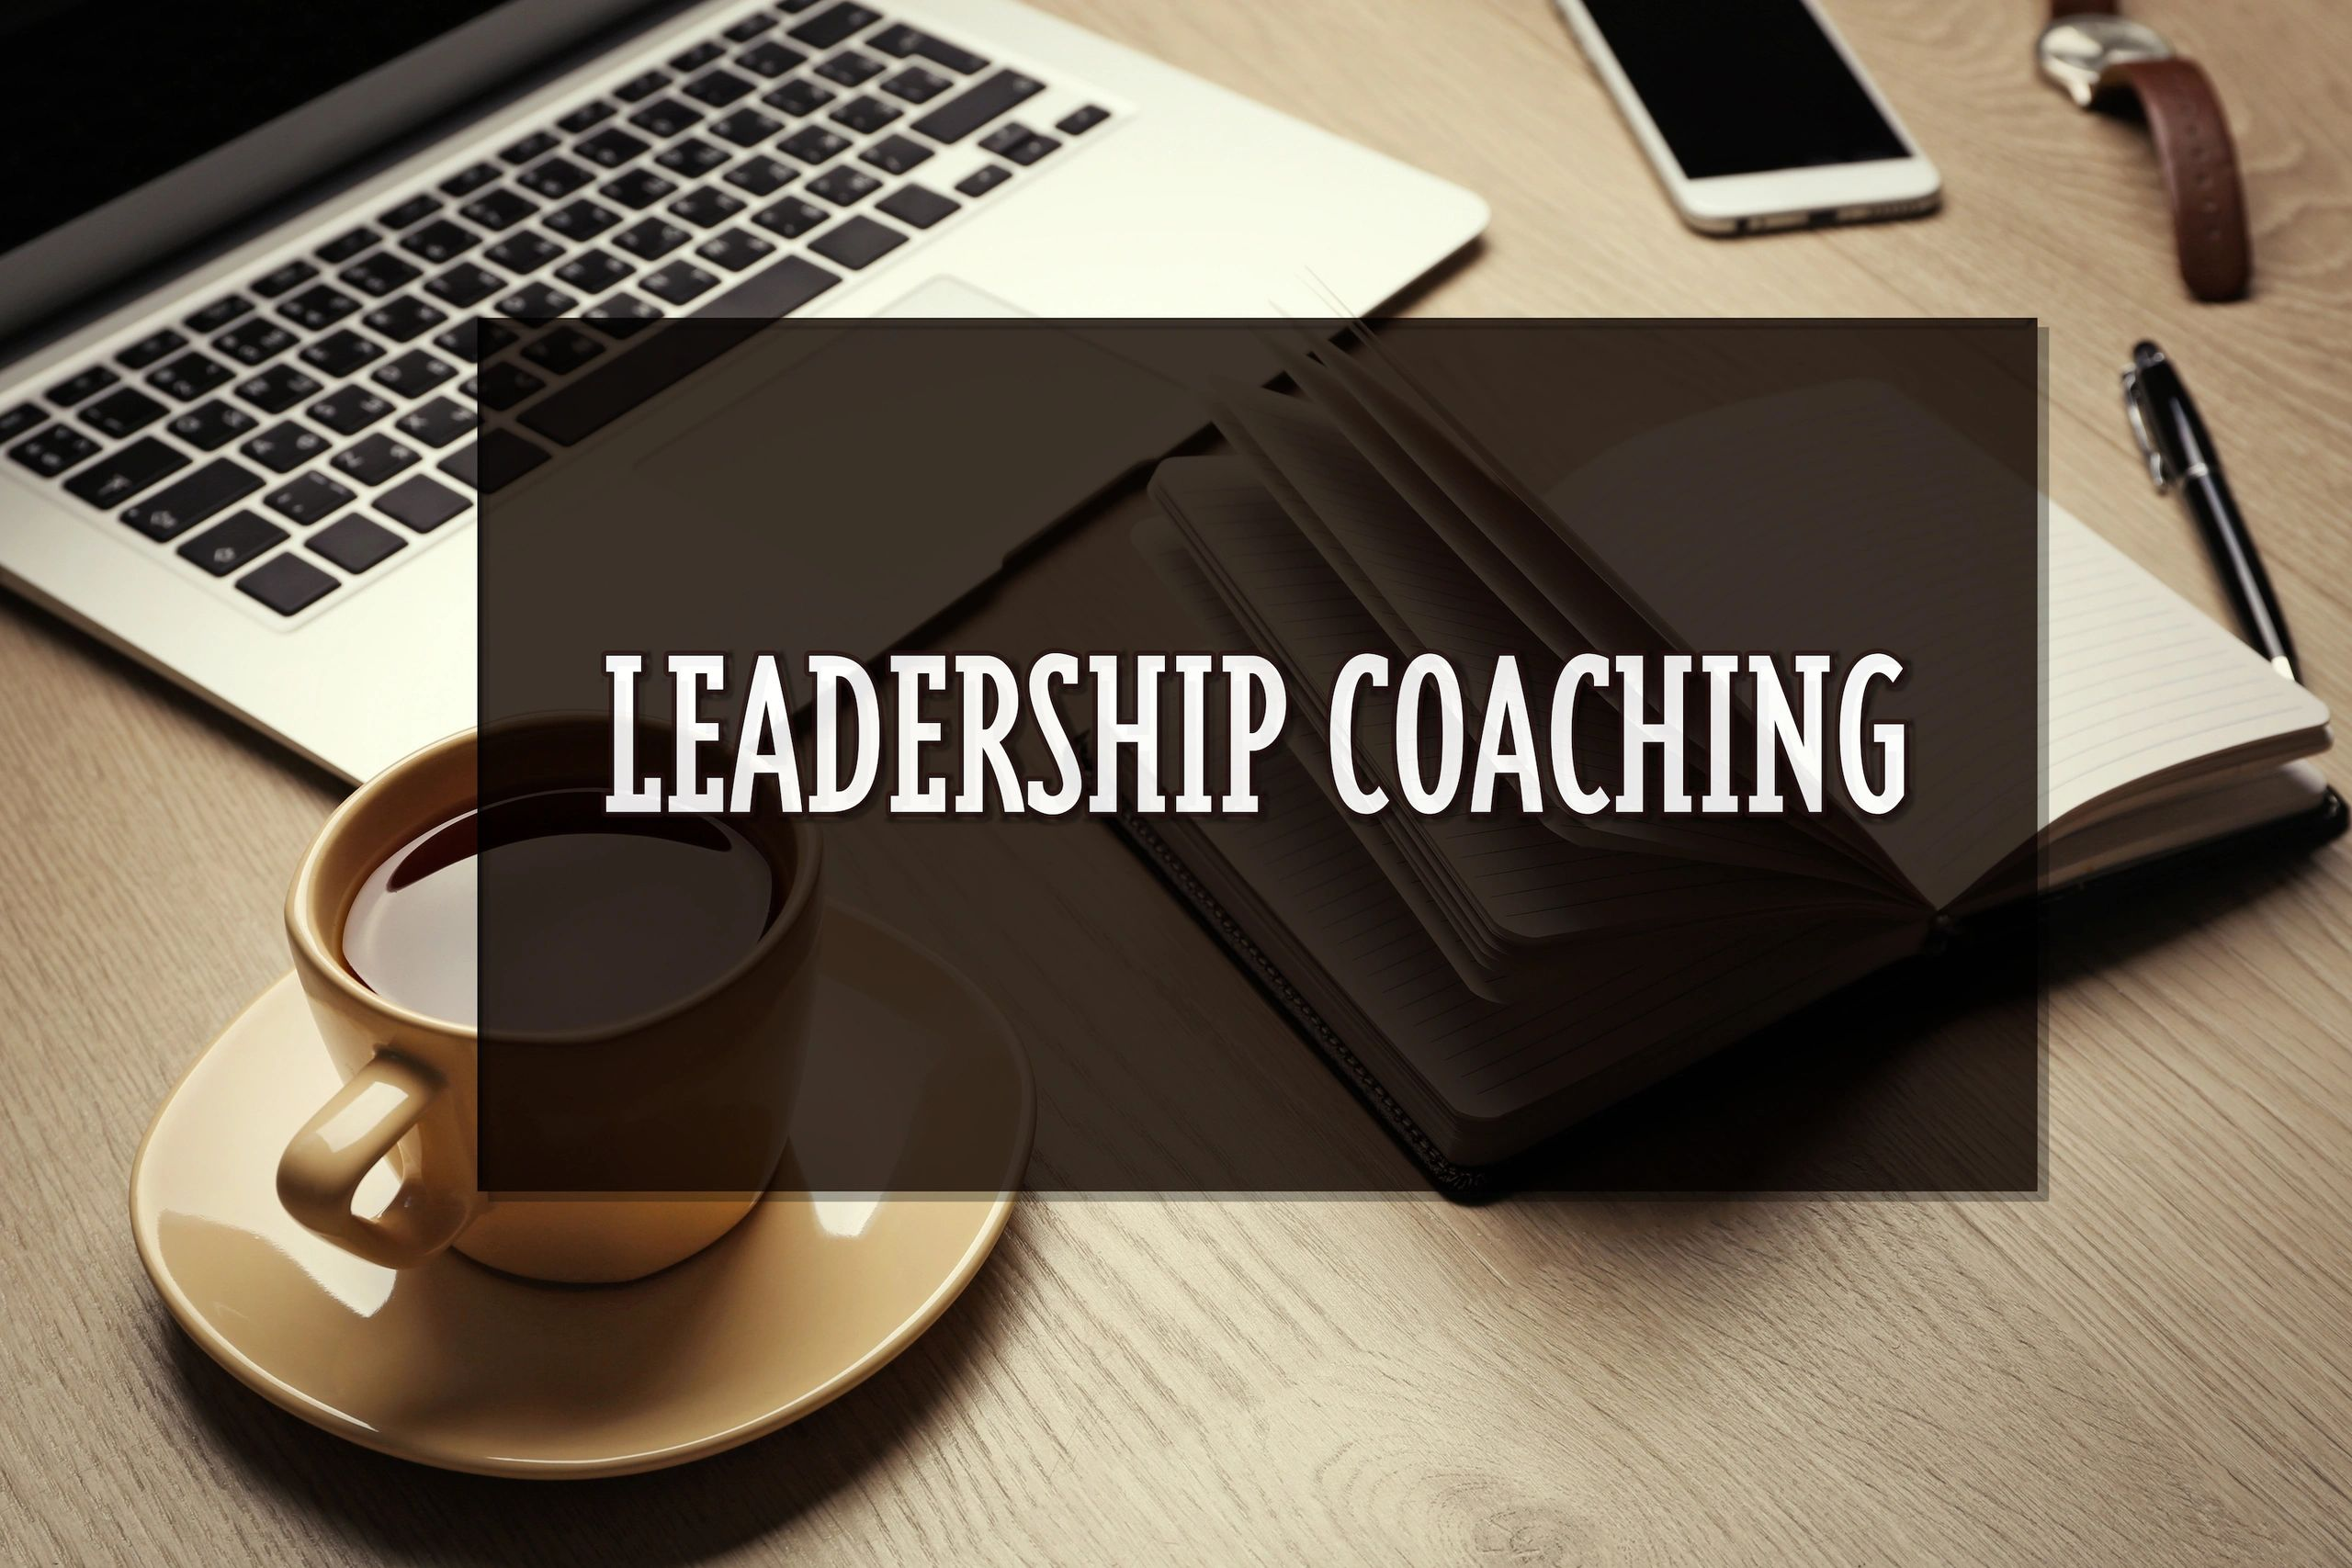 If Coaching is So Powerful, Why Aren't Principals Being Coached?